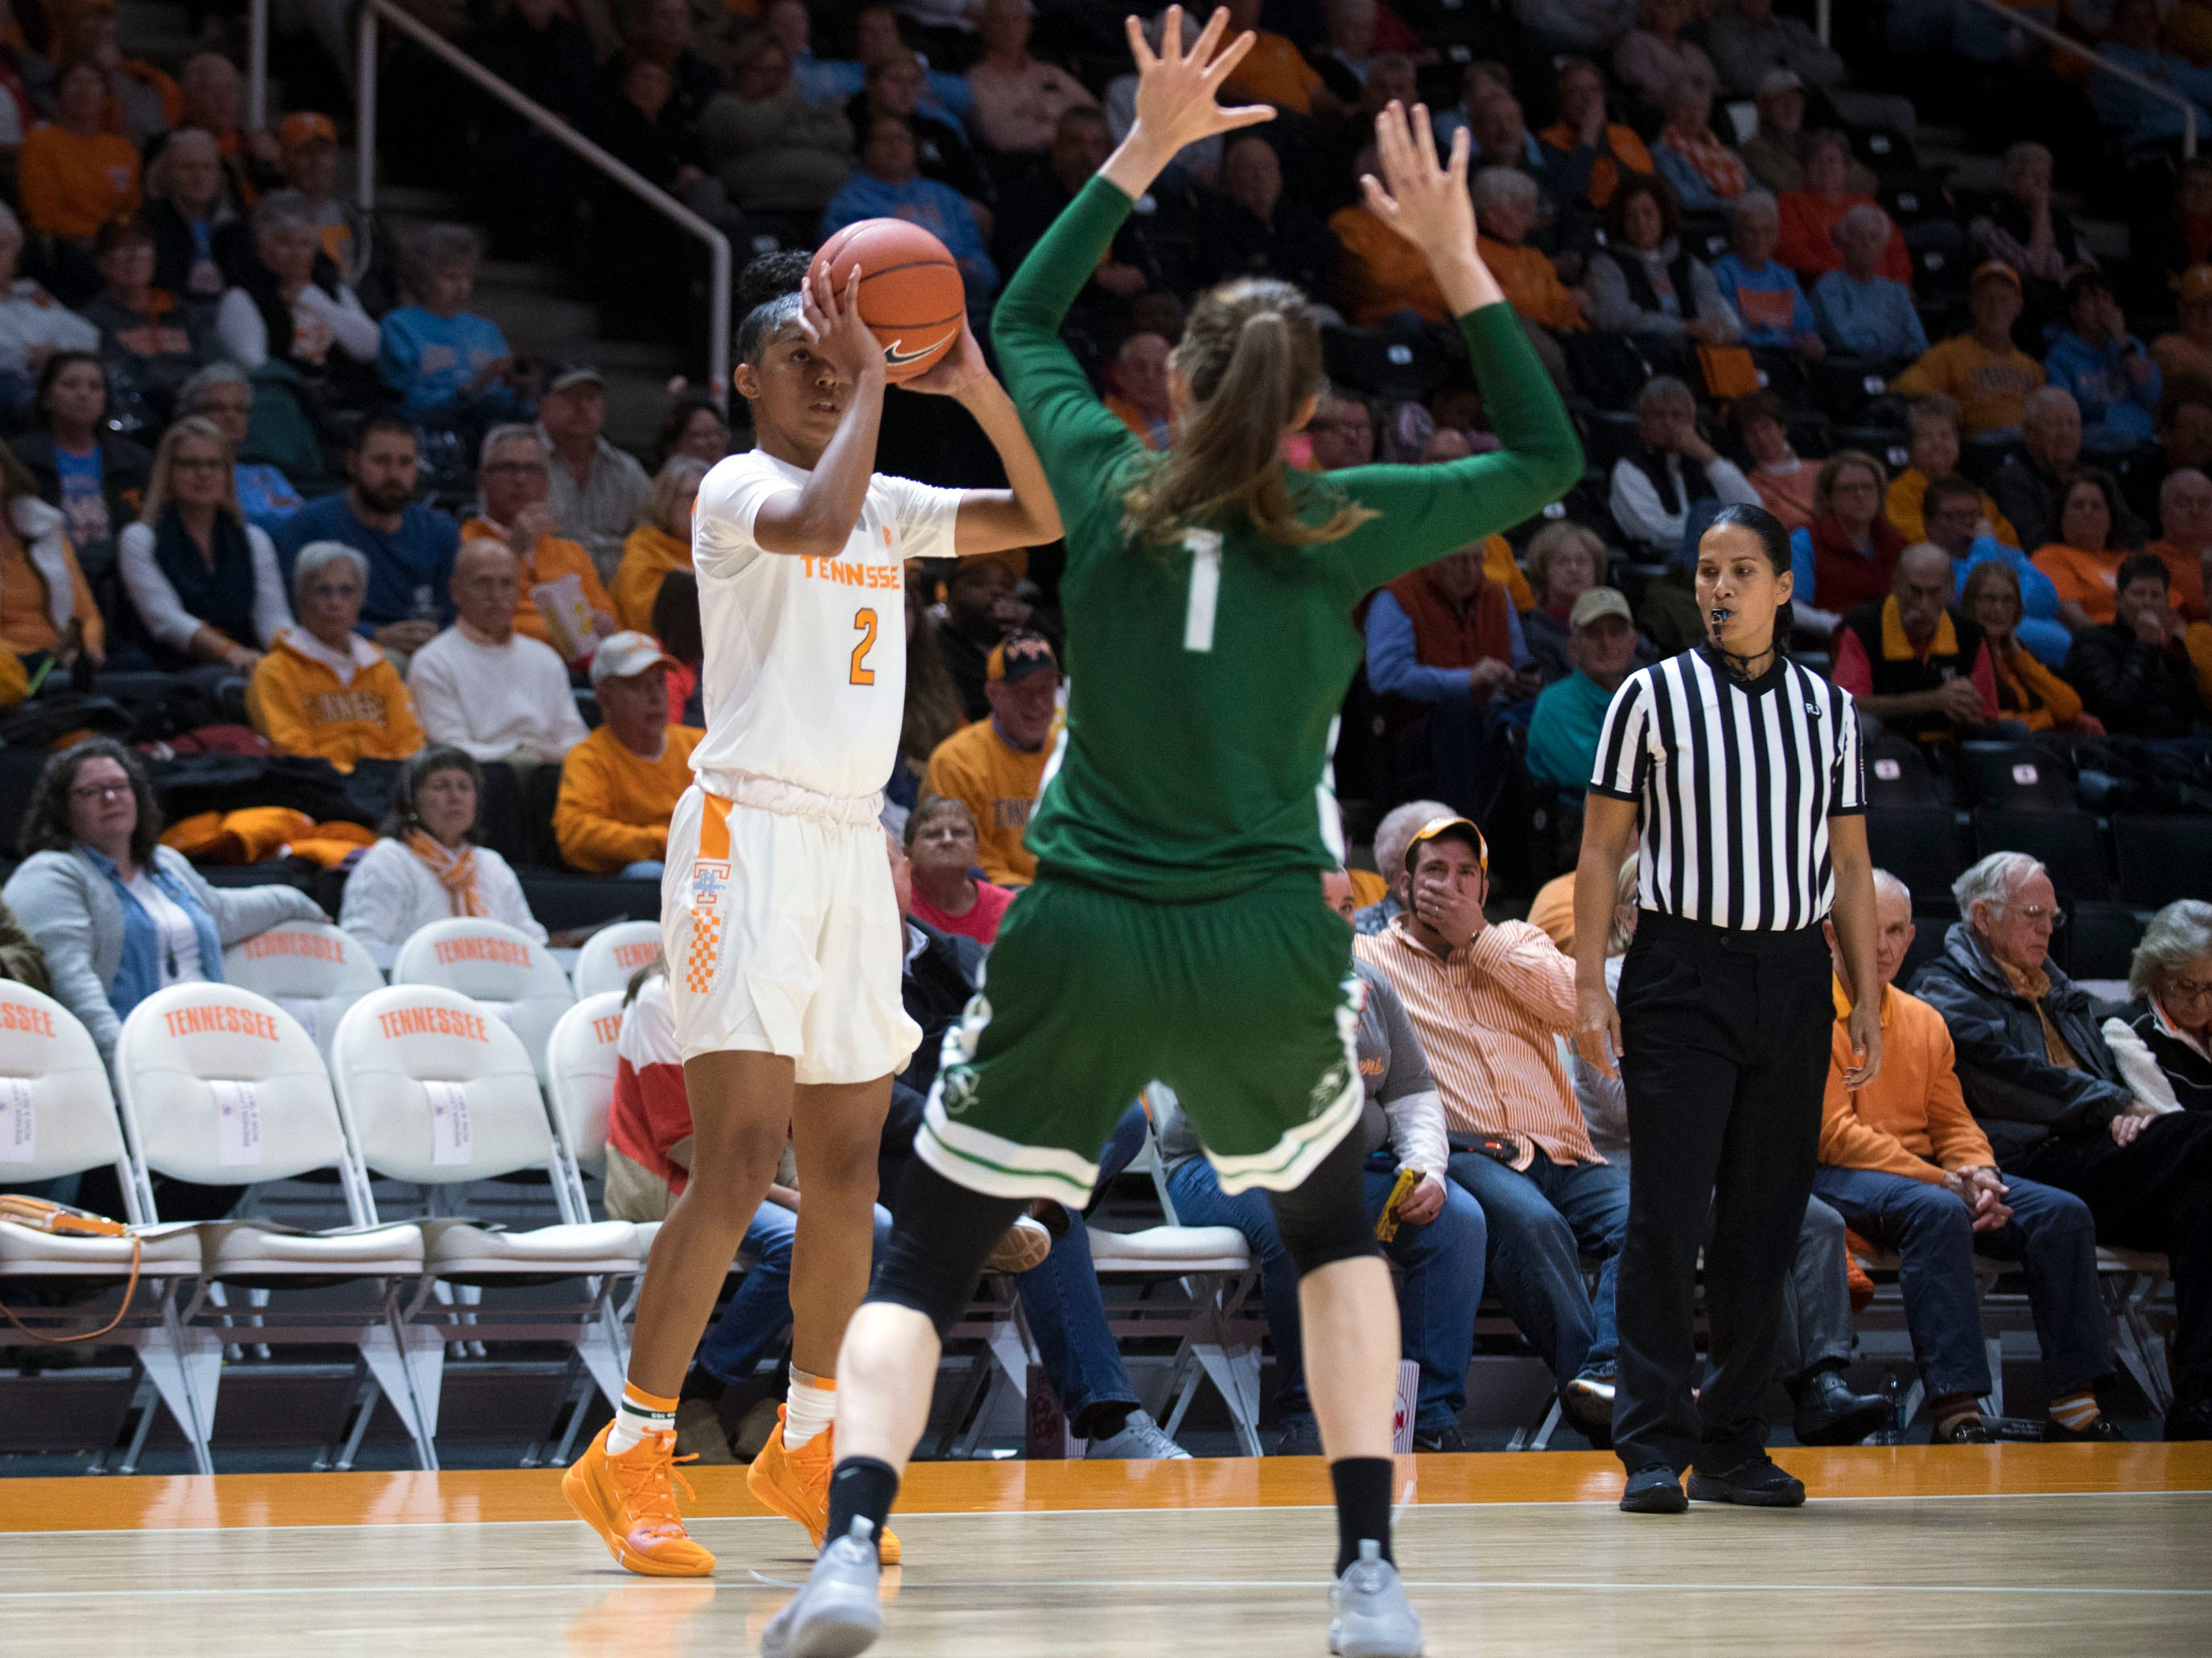 Tennessee's Evina Westbrook (2) on a three-point attempt while guarded by Stetson's Sarah Sagerer (1) at Thompson-Boling Arena on Wednesday, December 5, 2018.